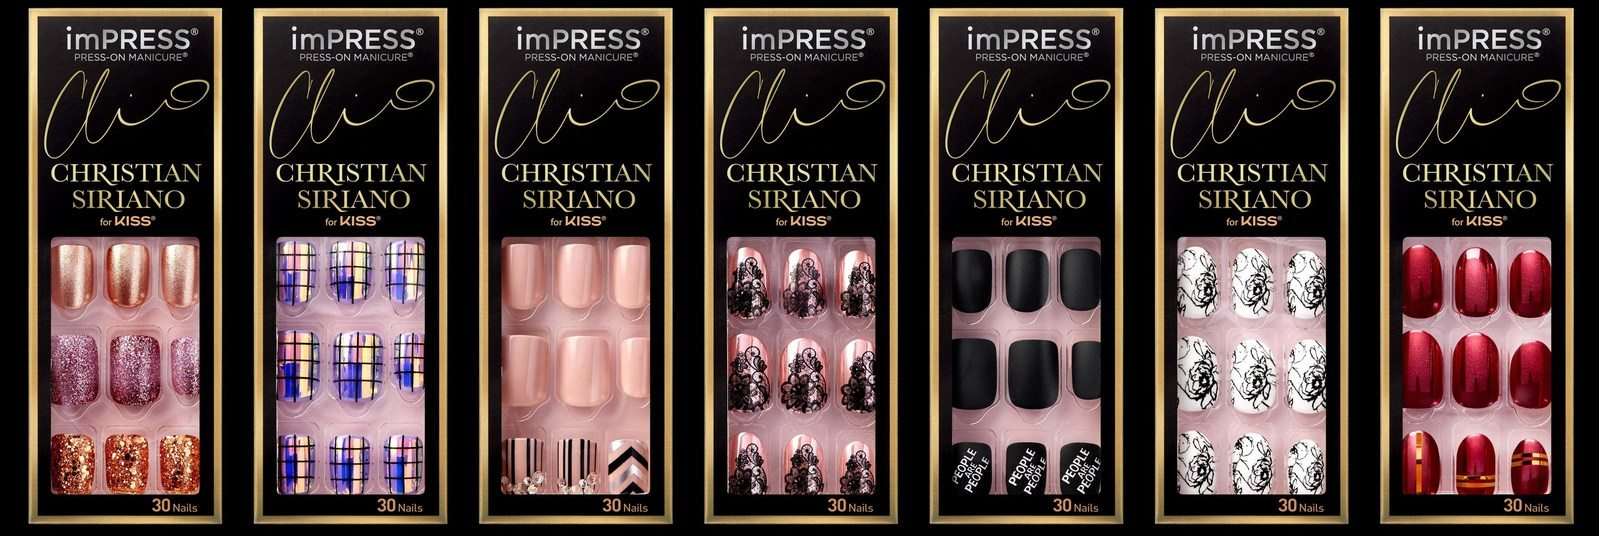 Kiss Nails Exclusive Christian Siriano Collection News